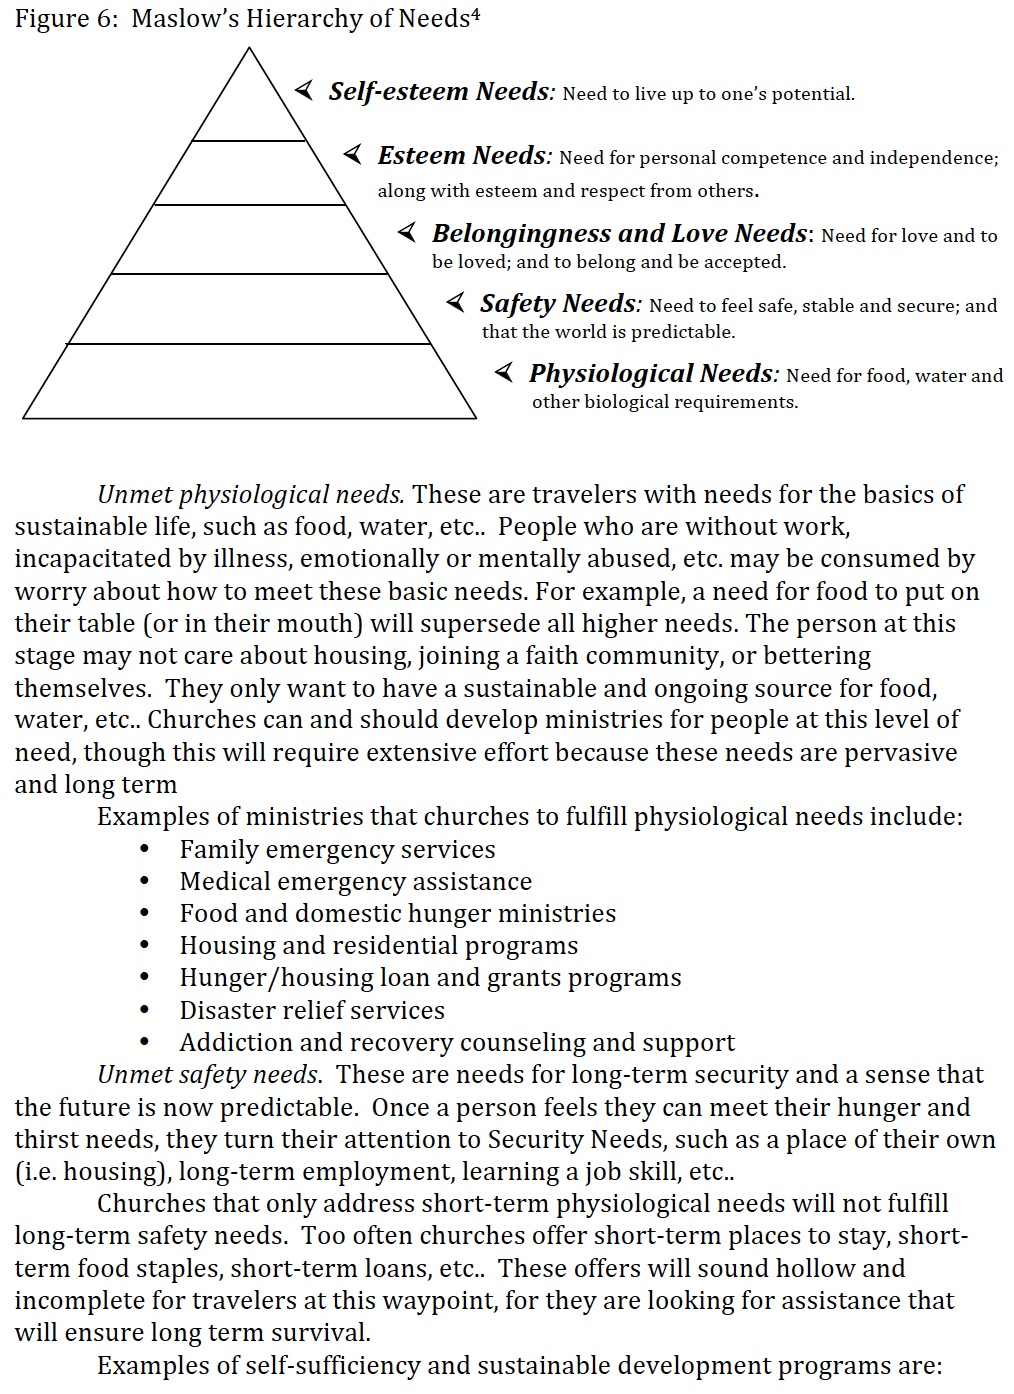 maslows hierarchy of needs pdf